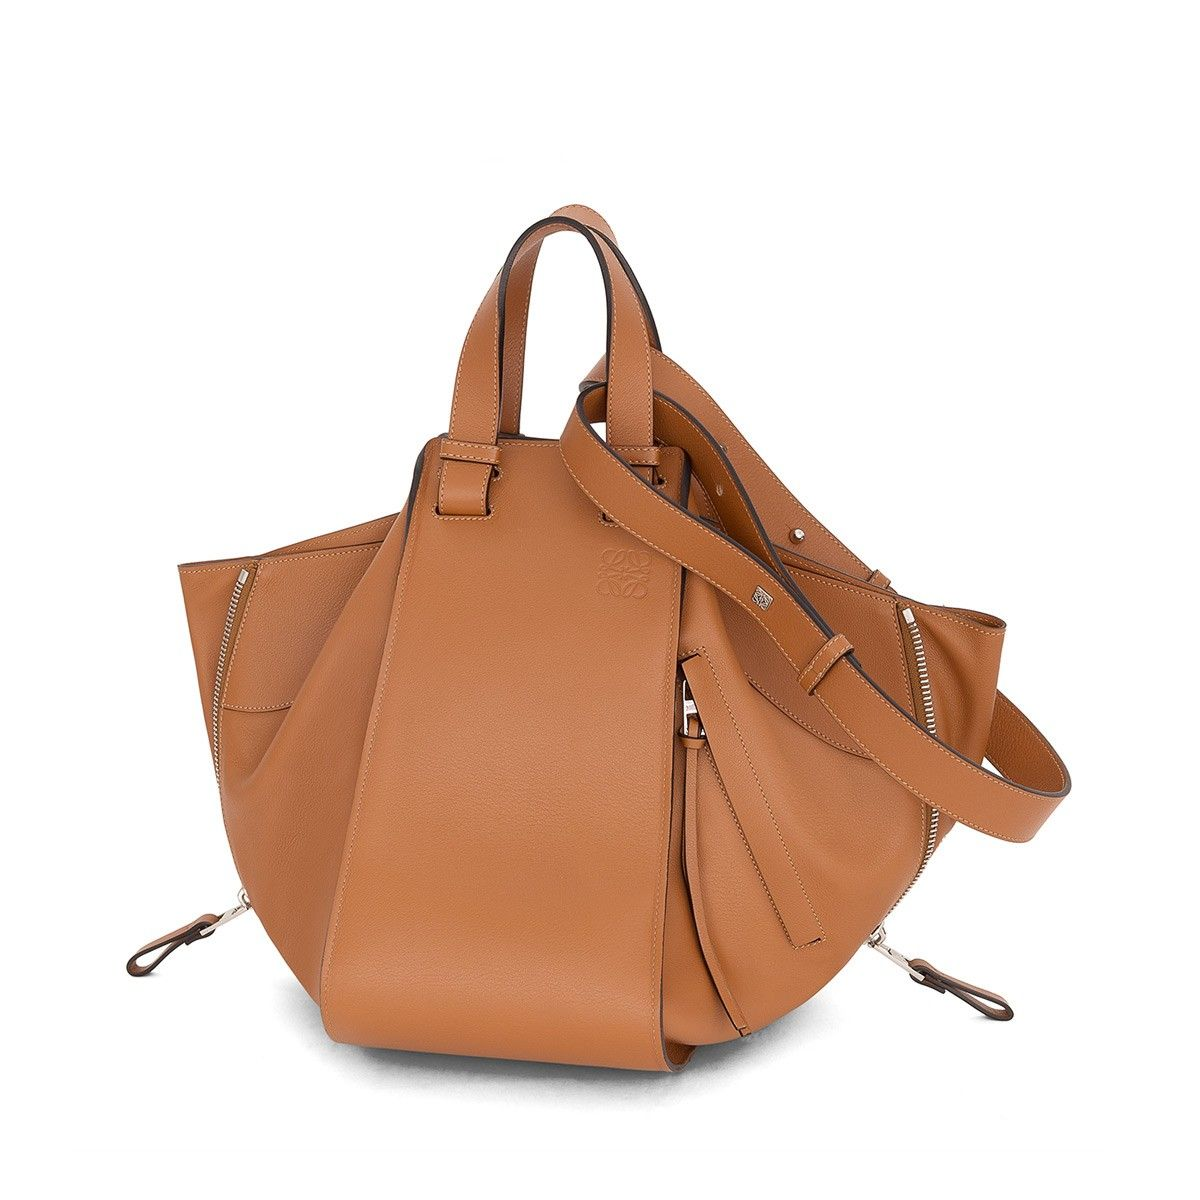 Loewe Shoulder Bags Hammock Bag Tan Handbag Perfection